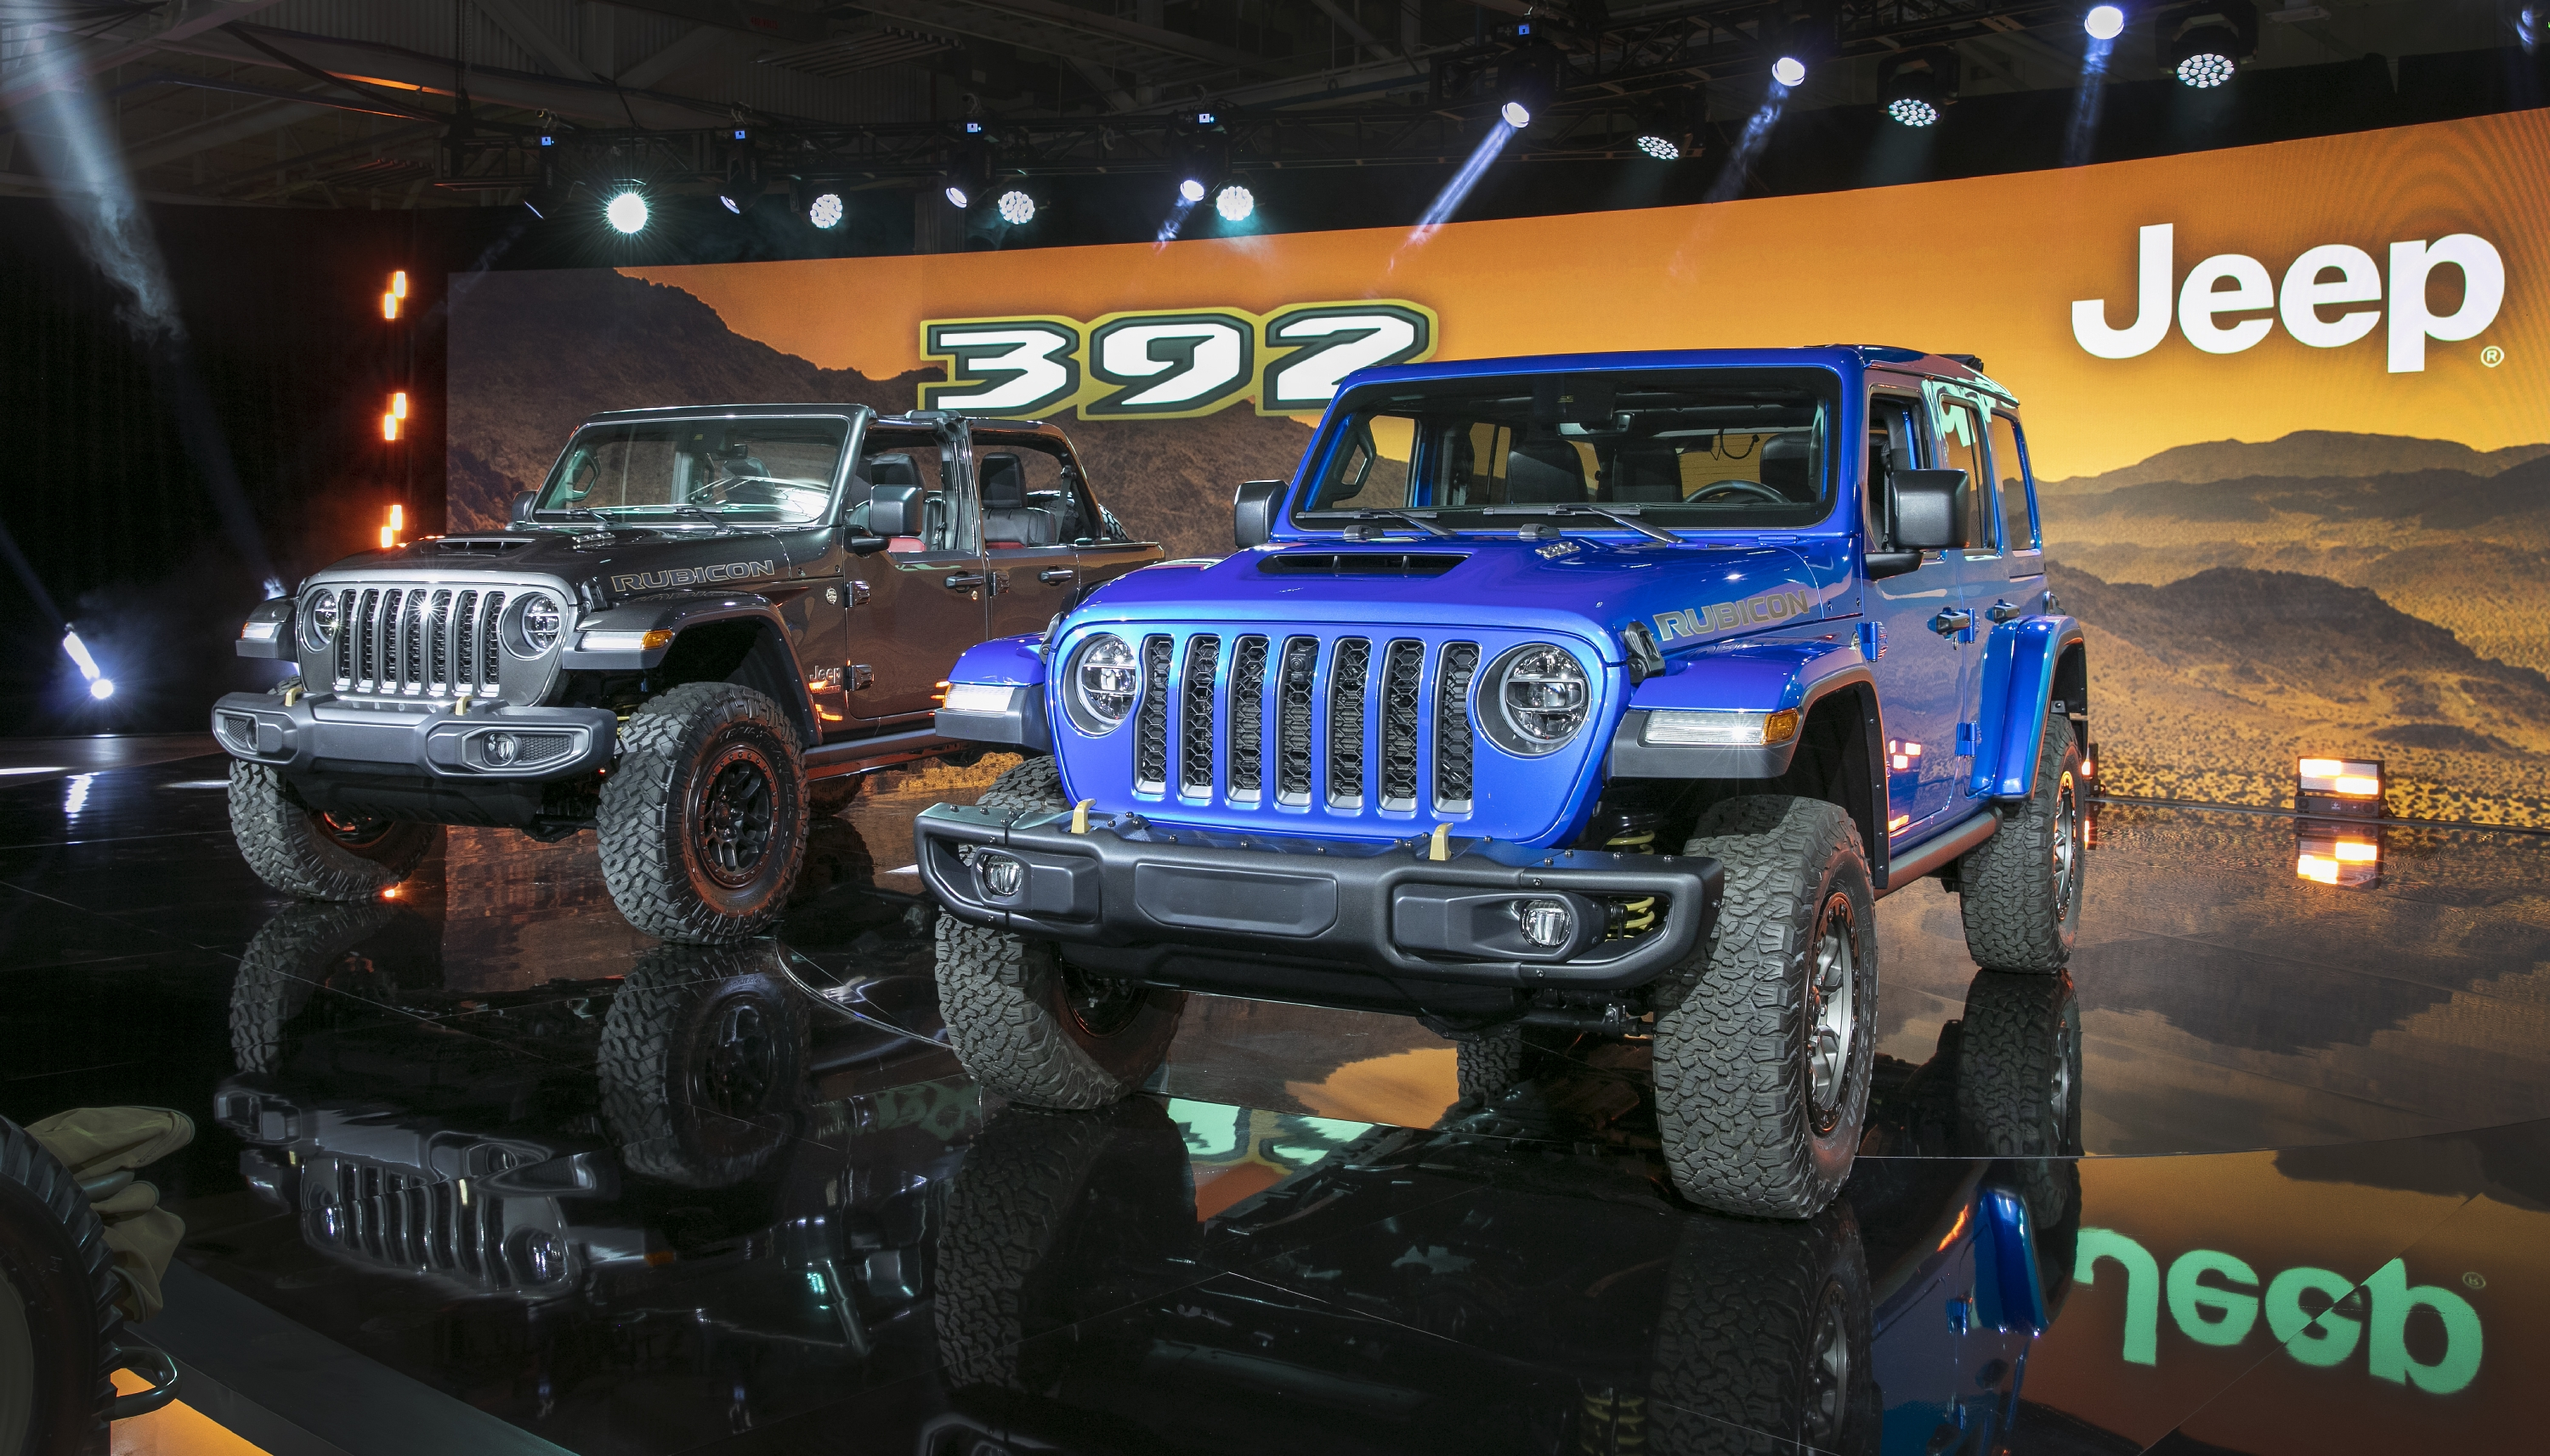 Fiat Chrysler Shows Off Its V8 Powered Jeep Wrangler Rubicon 392